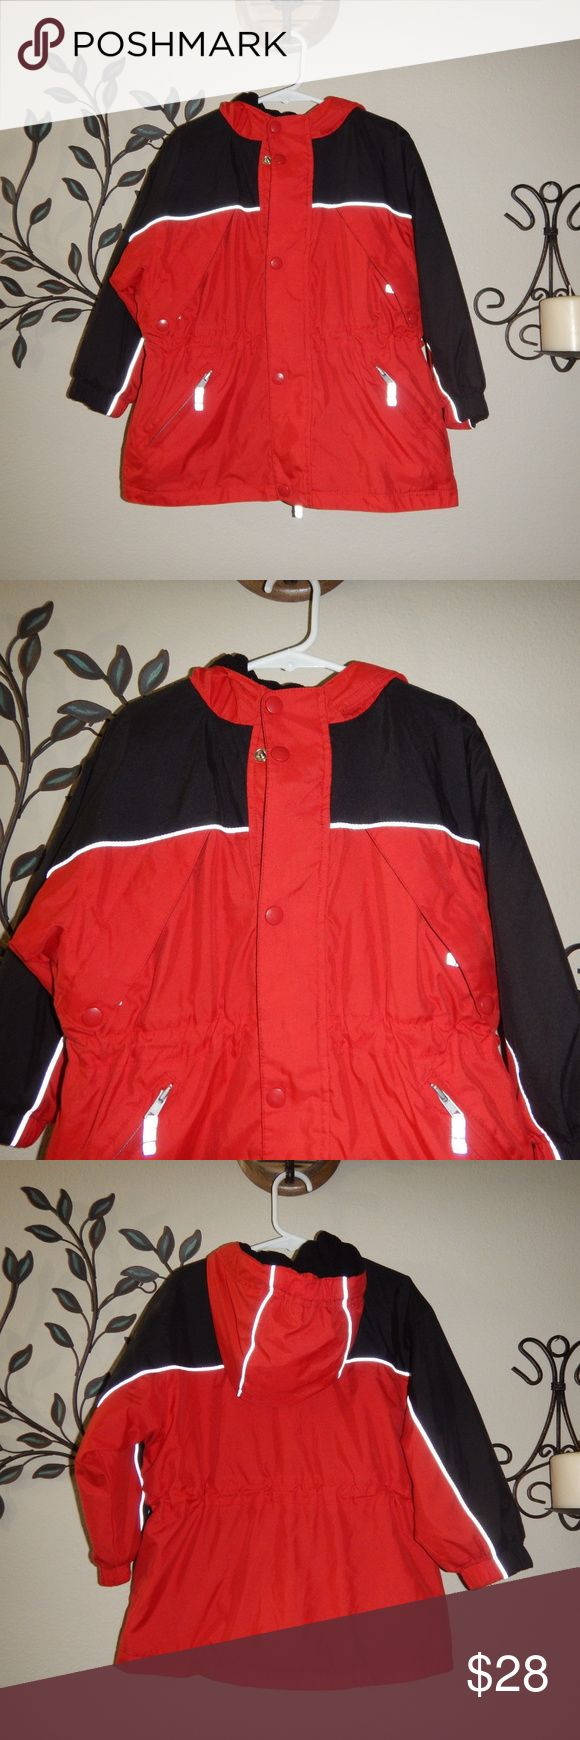 Hanna Andersson Boys Winter Jacket Hanna Andersson Boys Red Black Winter Hooded Jacket Size 100 Boys size 4 Fleece lined with reflective piping Hanna Andersson Jackets & Coats